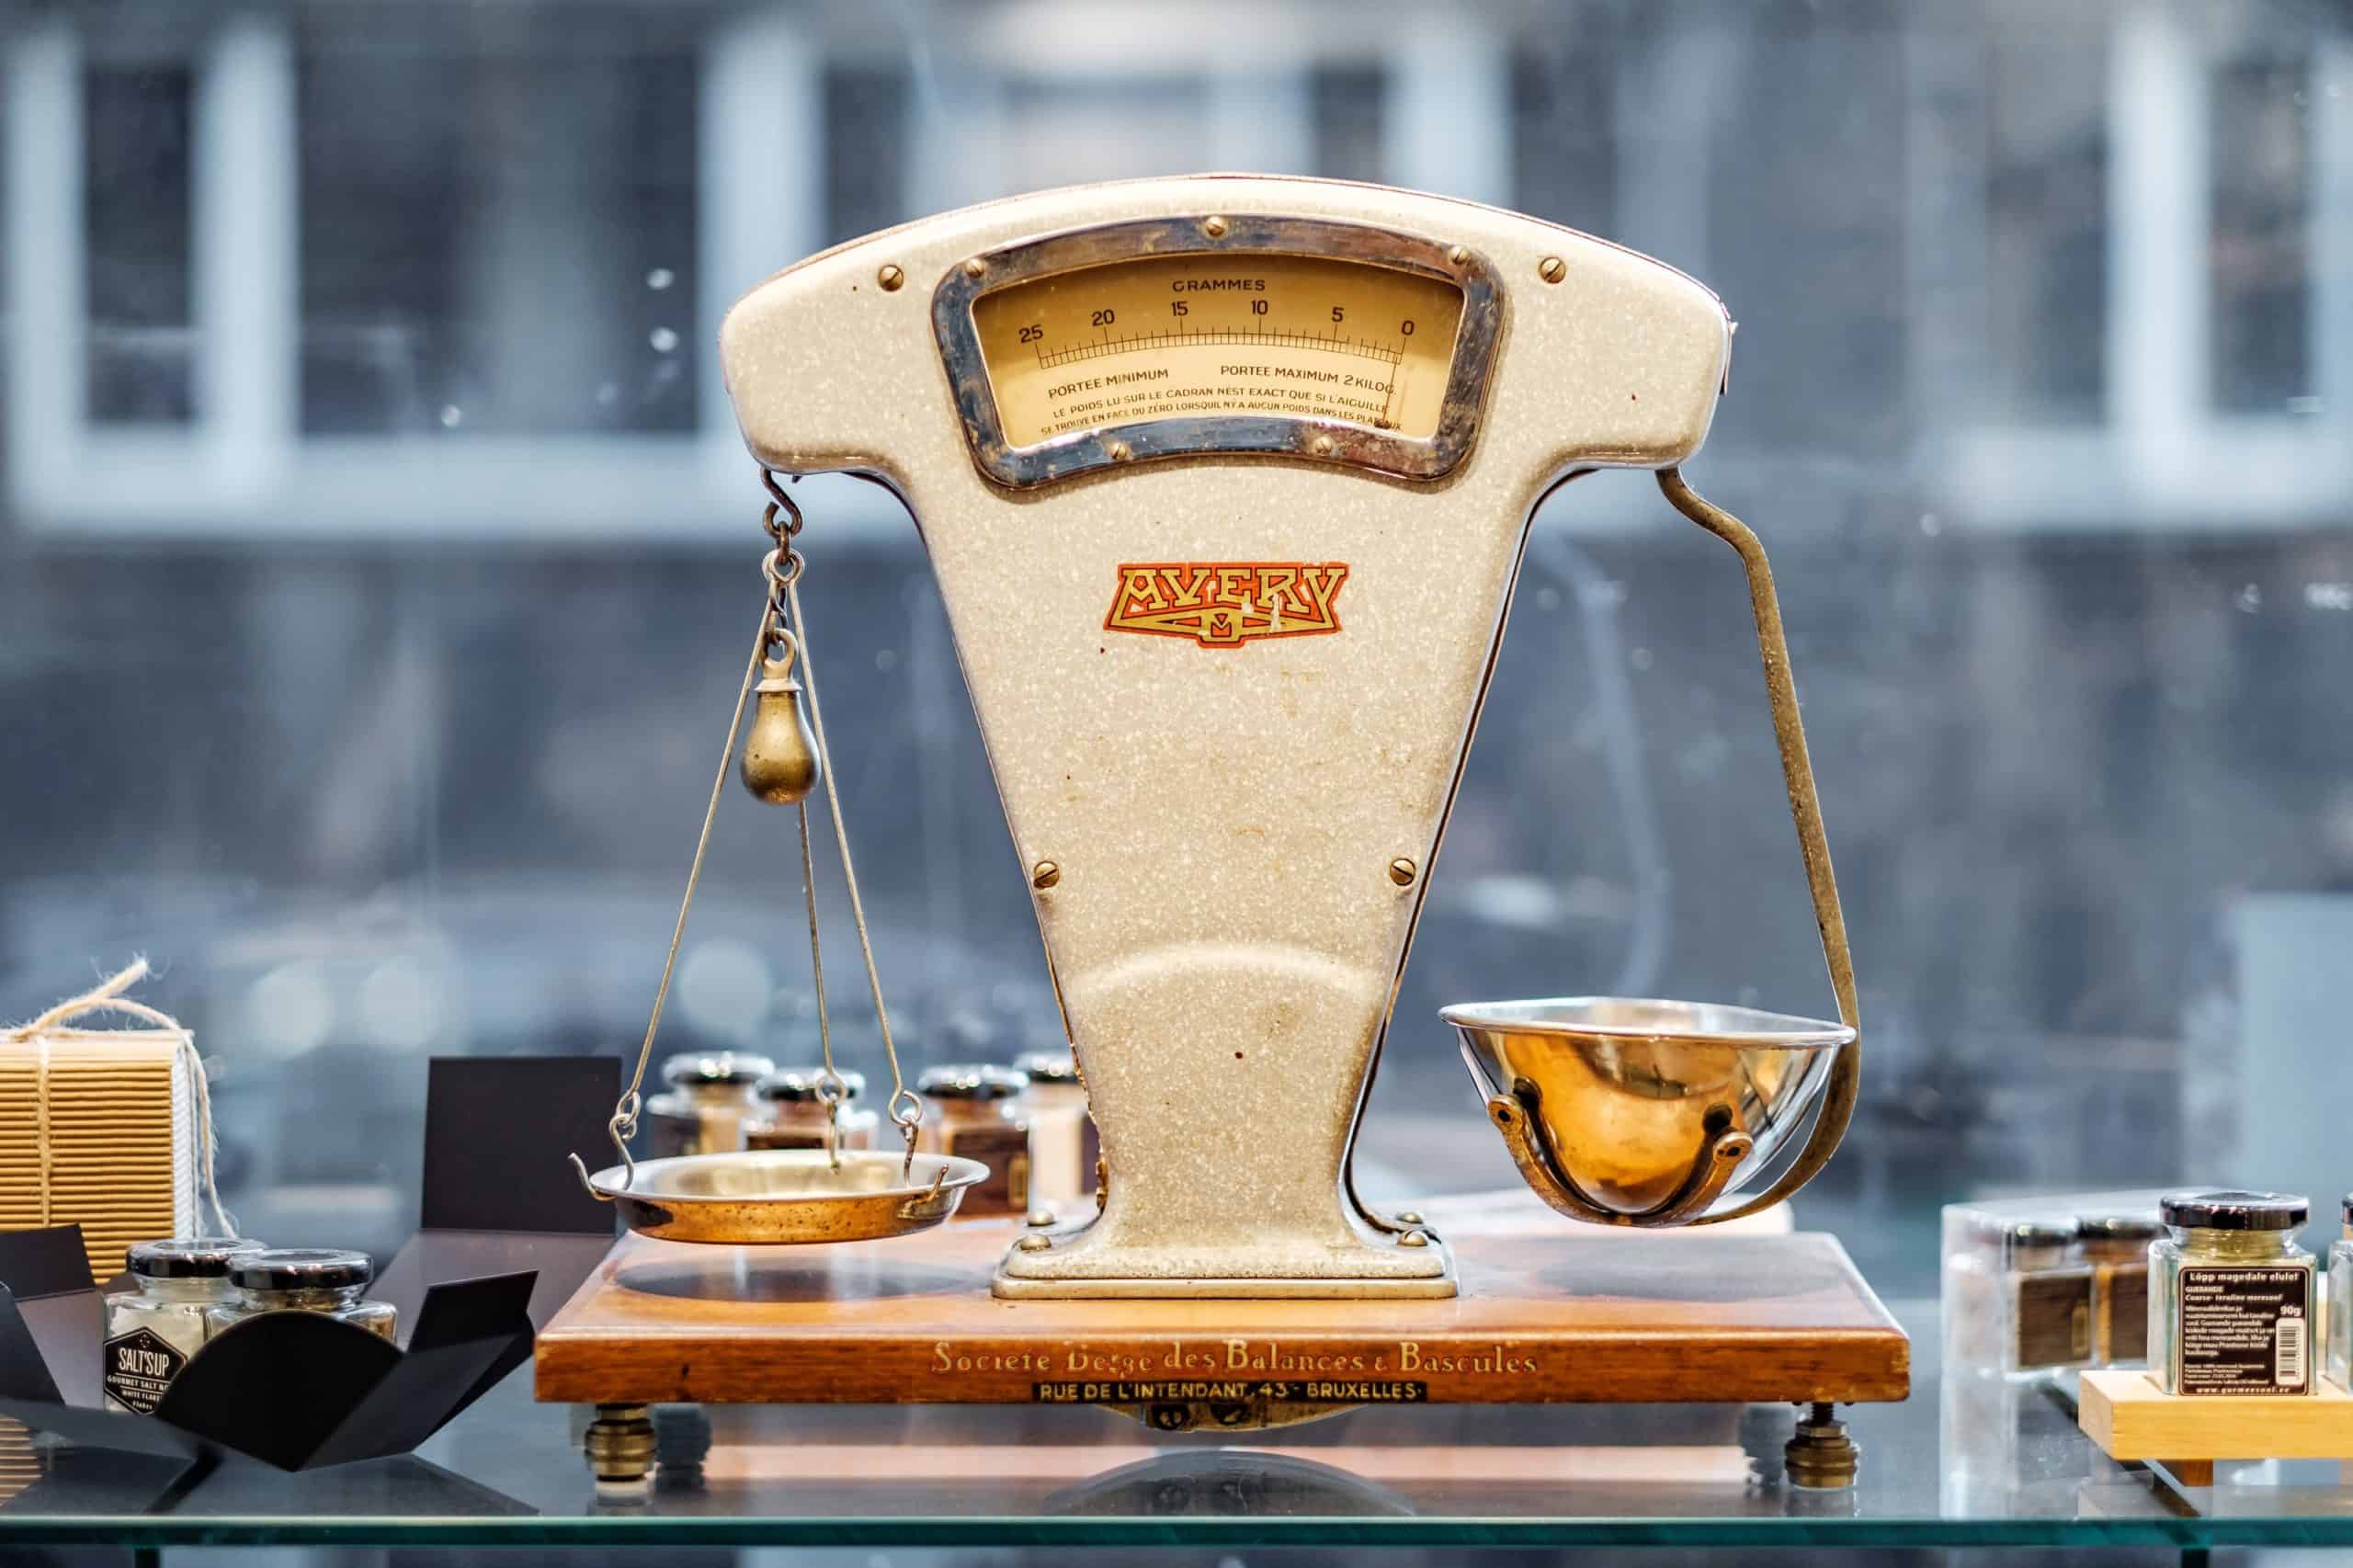 Old fashioned weighing scales